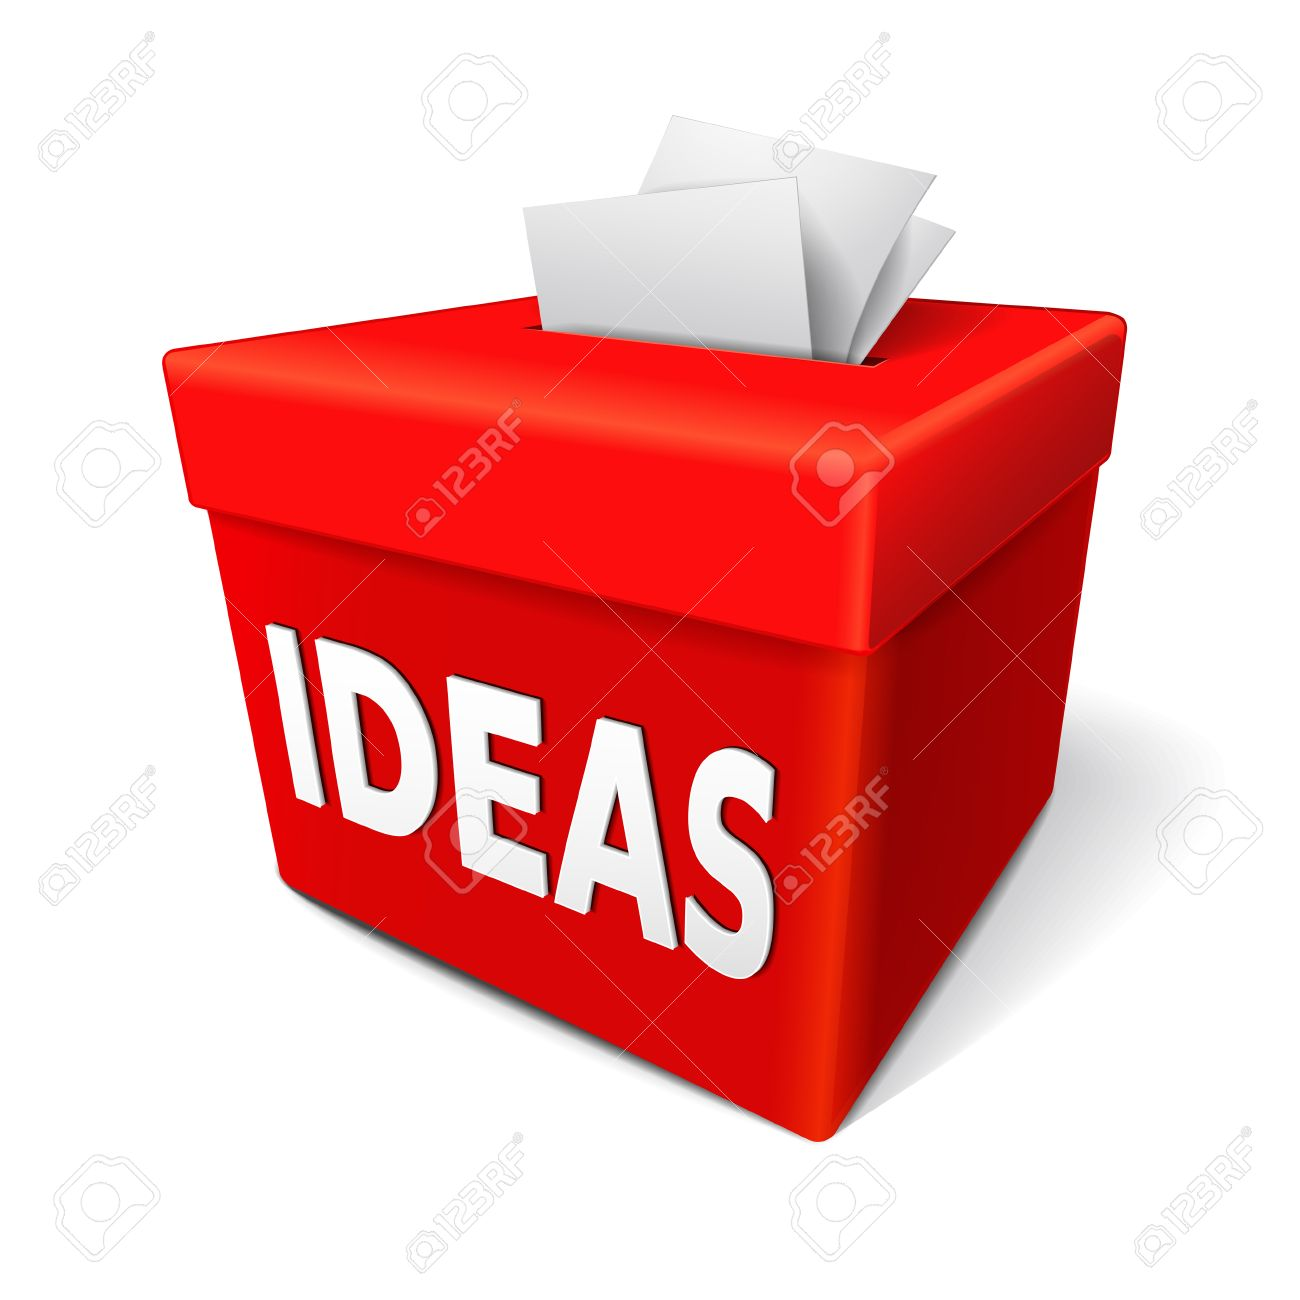 A Red Ideas Box For Submission Of Creative And Innovative Thoughts On Making New Product